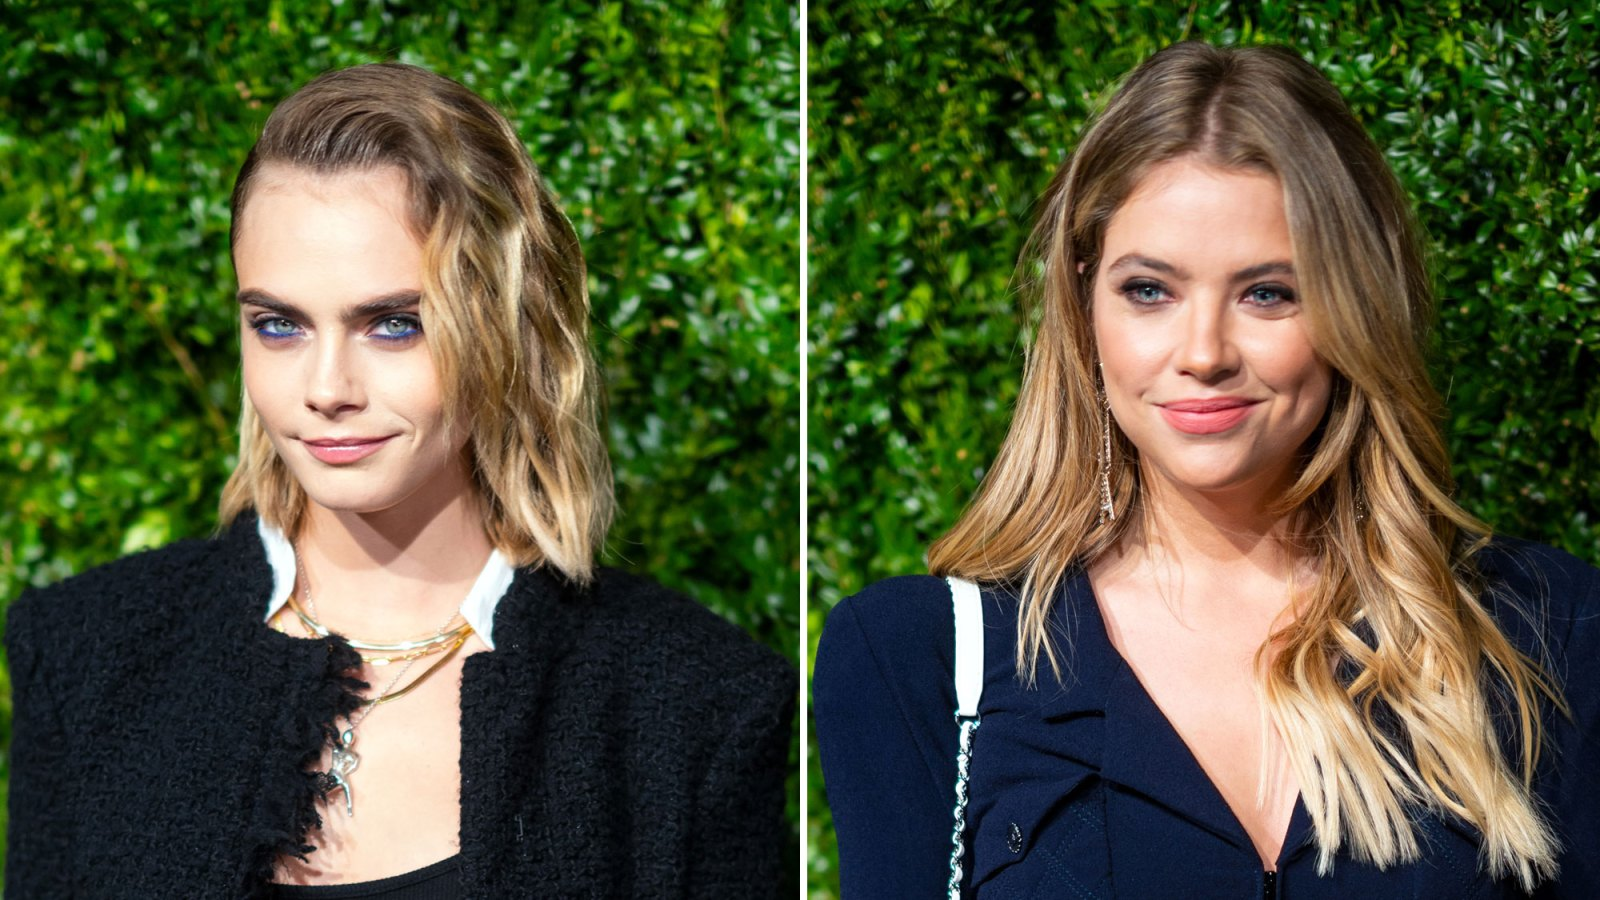 Cara Delevingne Posts Steamy Makeout Video With Ashley Benson